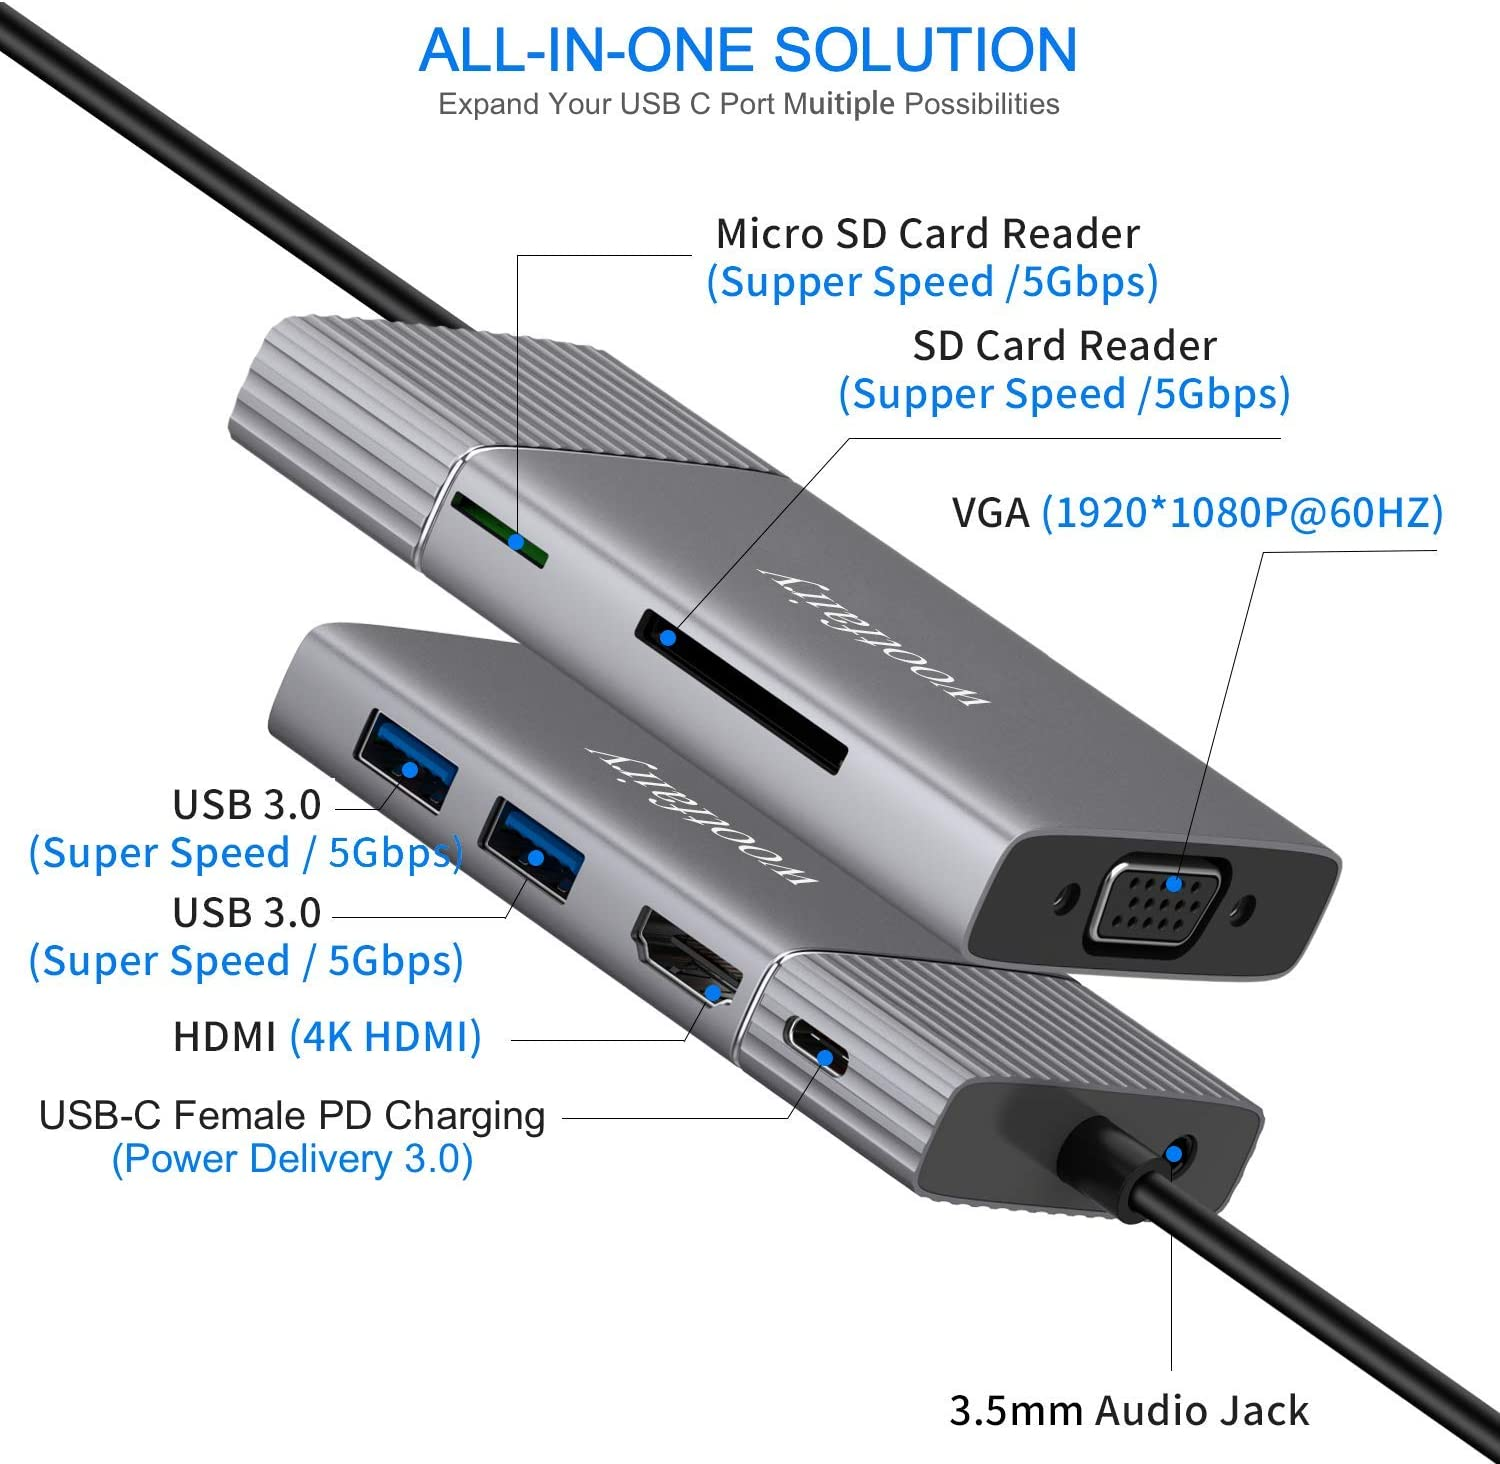 XPS and More ChromeBook 3xUSB 3.0 8-in-1 Wootfairy 5 in 1 Mac Network Adapter Dock Compatible for MacBook Pro//Air USB-C PD USB C Hub Type C Adapter Dongle with 1Gbps RJ45 Ethernet Port